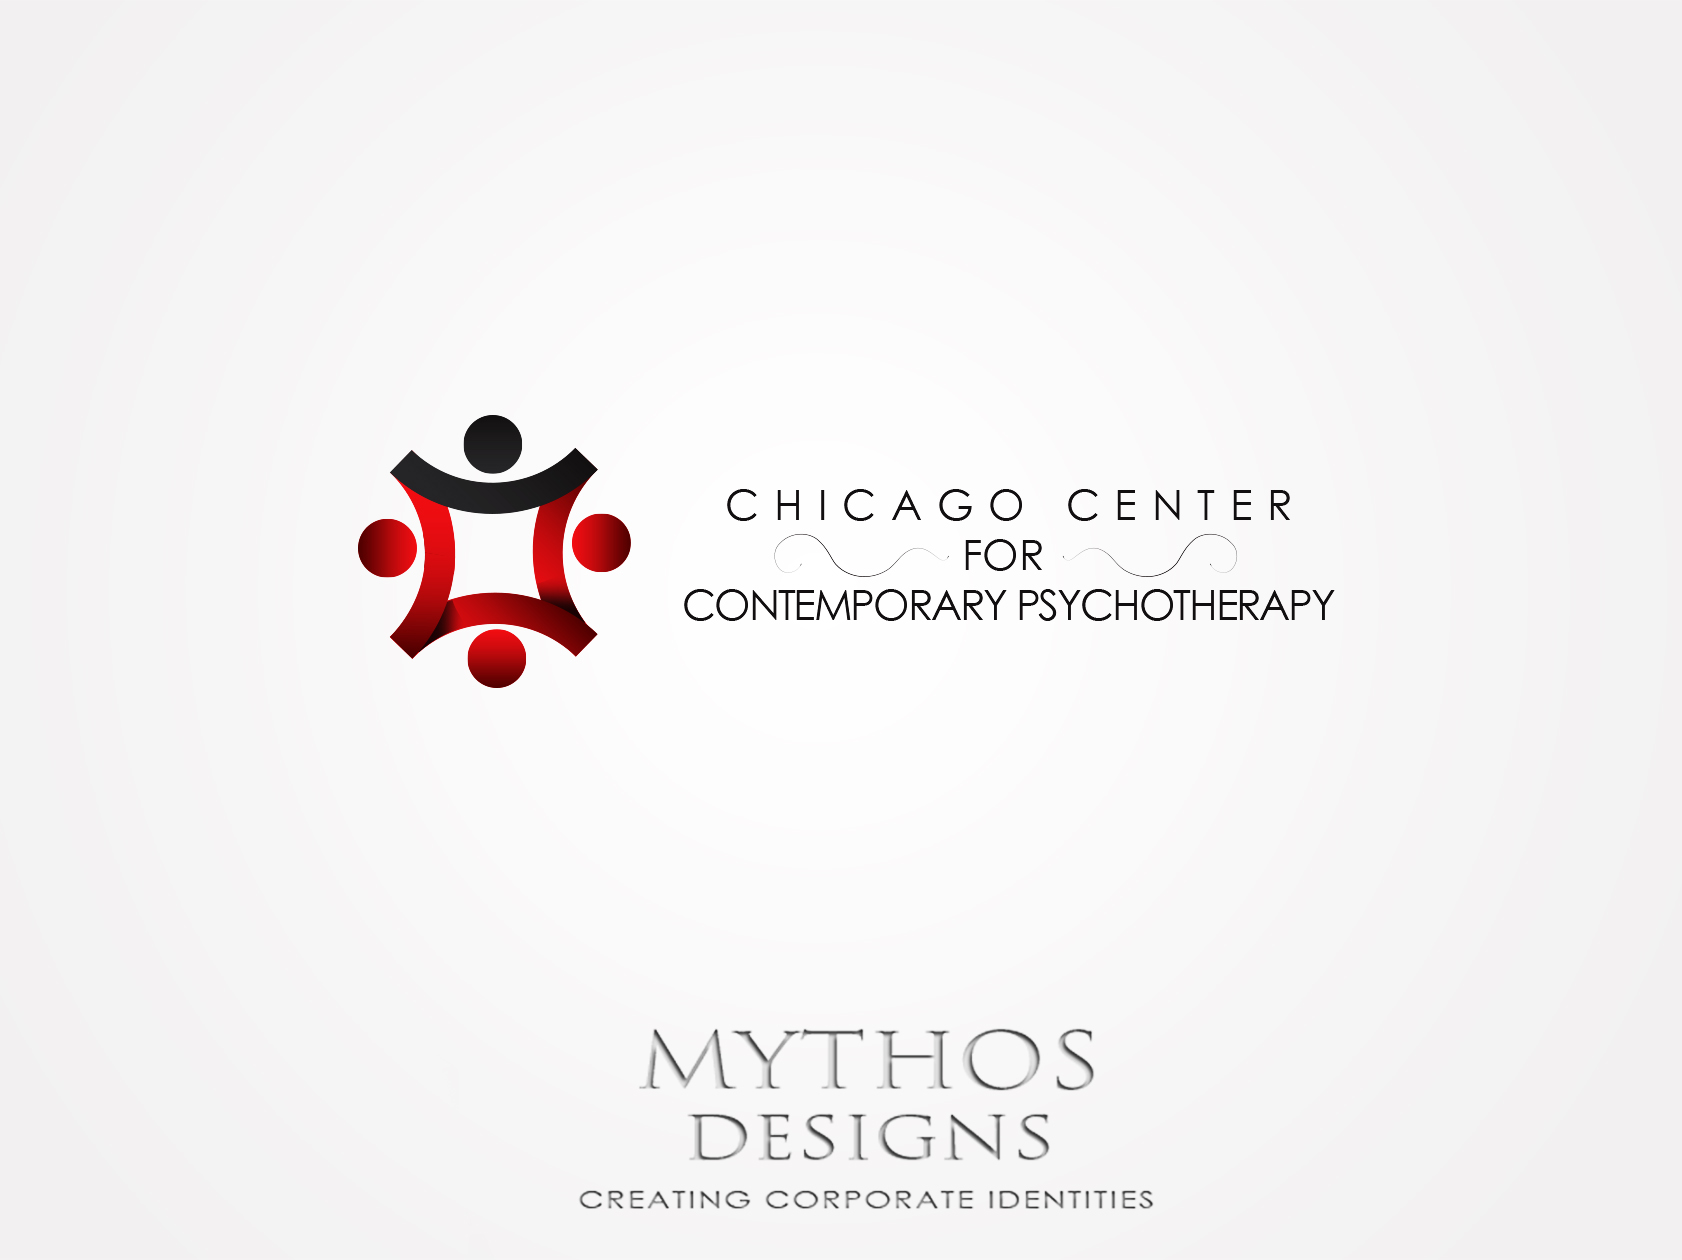 Logo Design by Mythos Designs - Entry No. 45 in the Logo Design Contest Inspiring Logo Design for Chicago Center for Contemporary Psychotherapy.